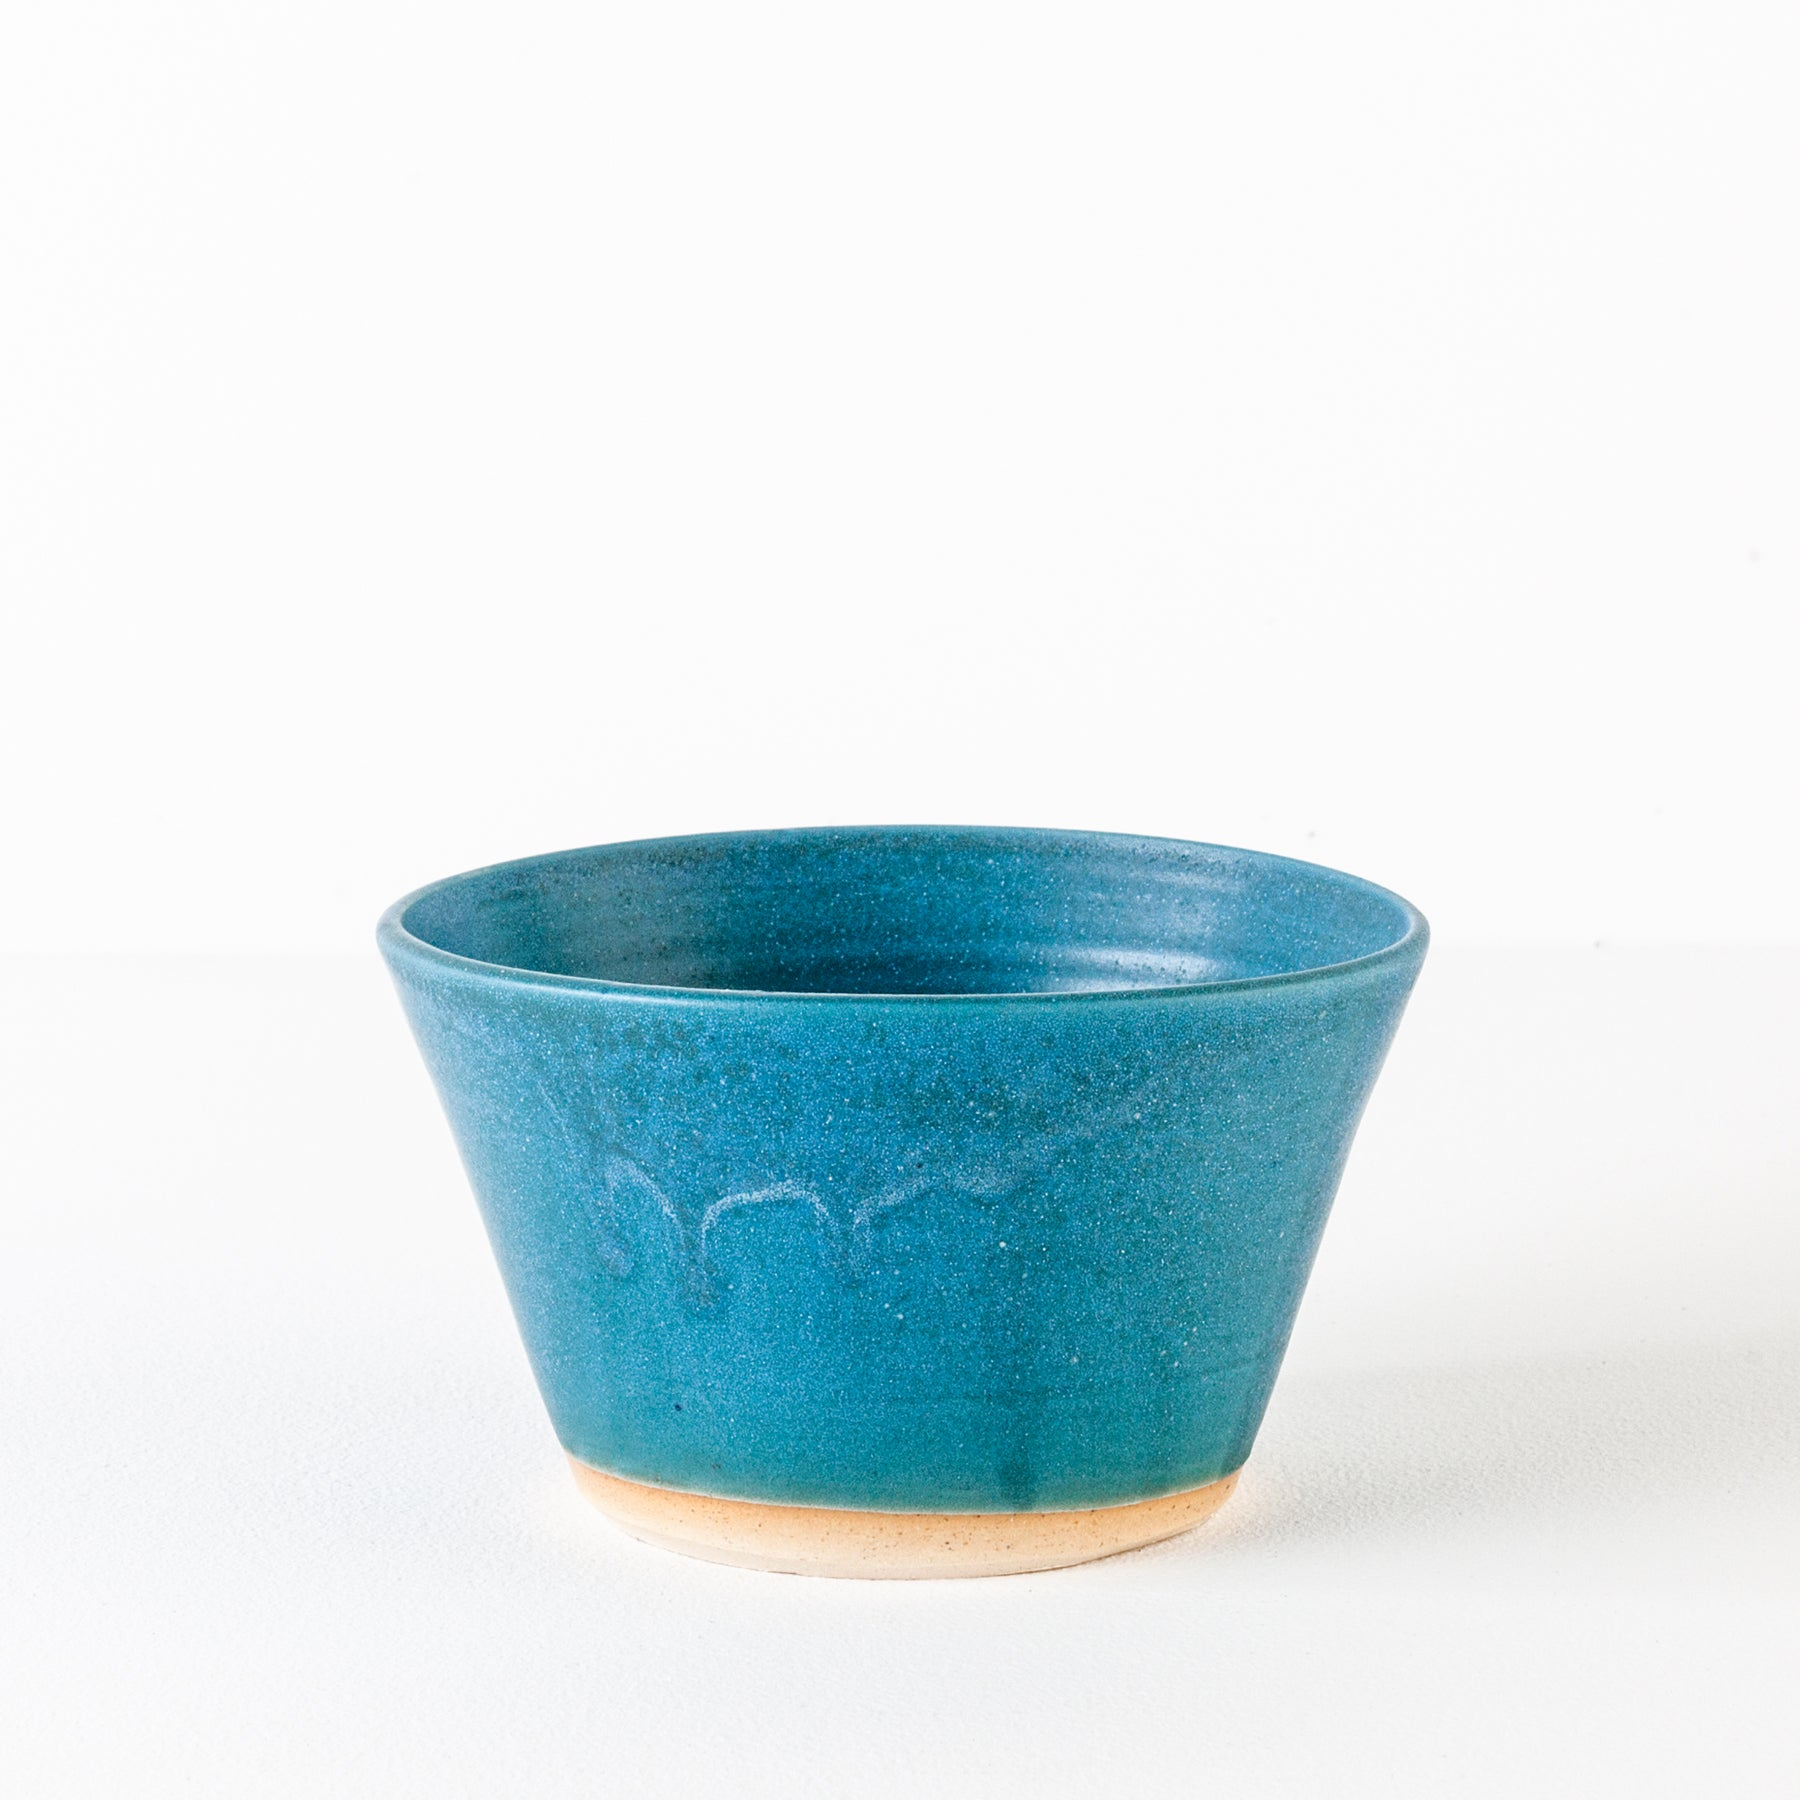 Stackable Stoneware Bowl in Teal